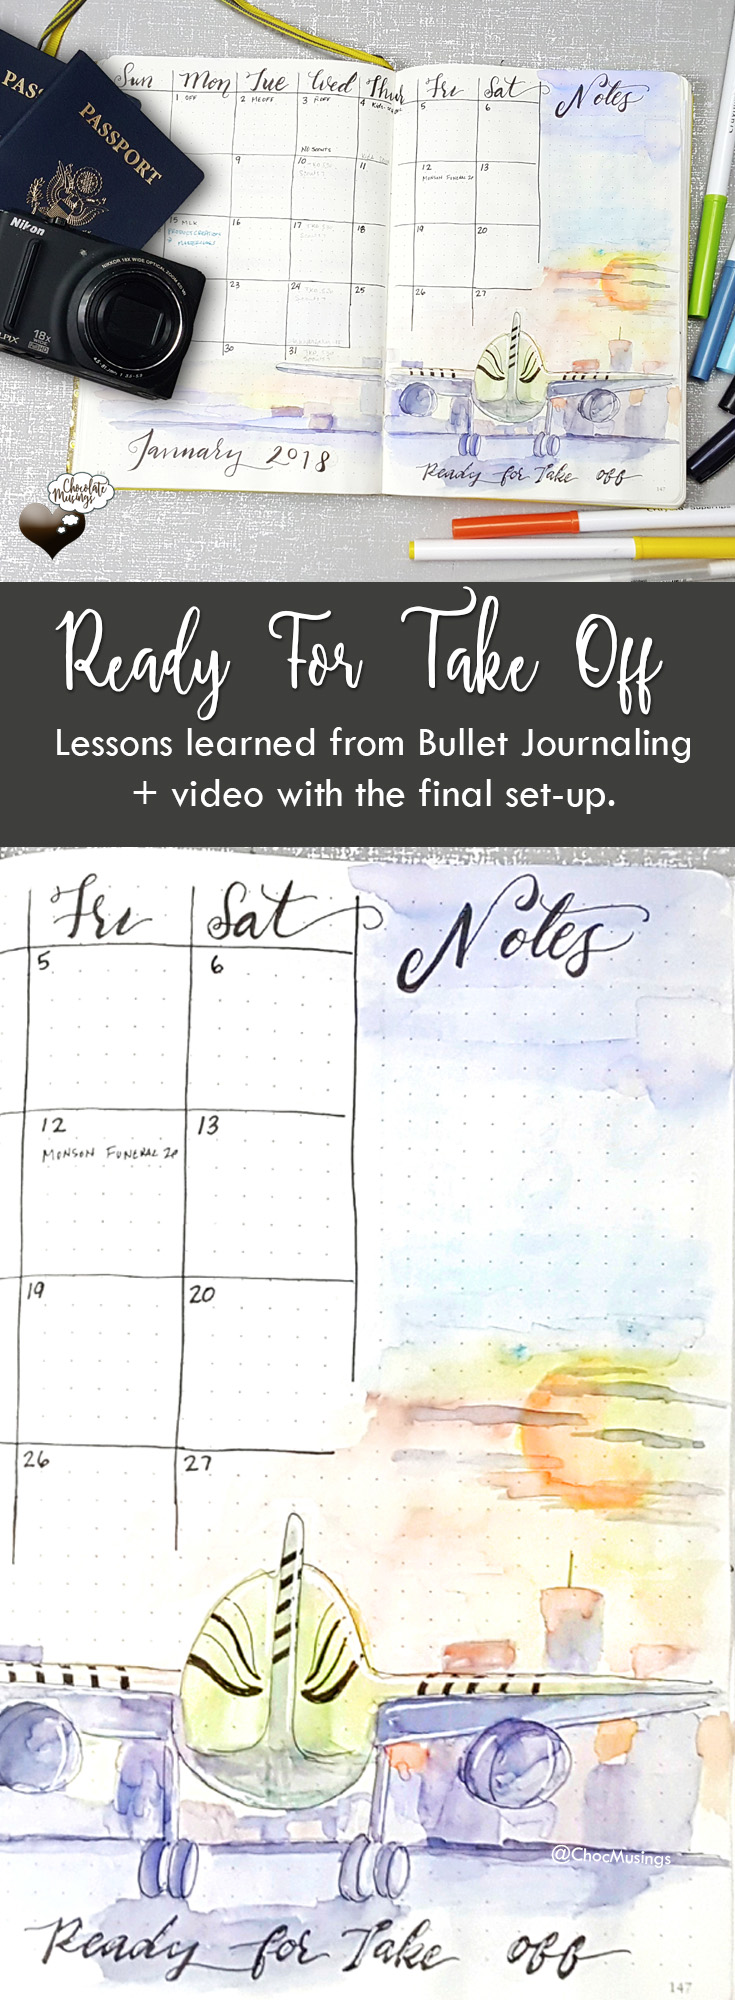 "Monthly Calendar Set up with theme - ""Ready for Take Off"" - lessons learned from bullet journaling + process video"